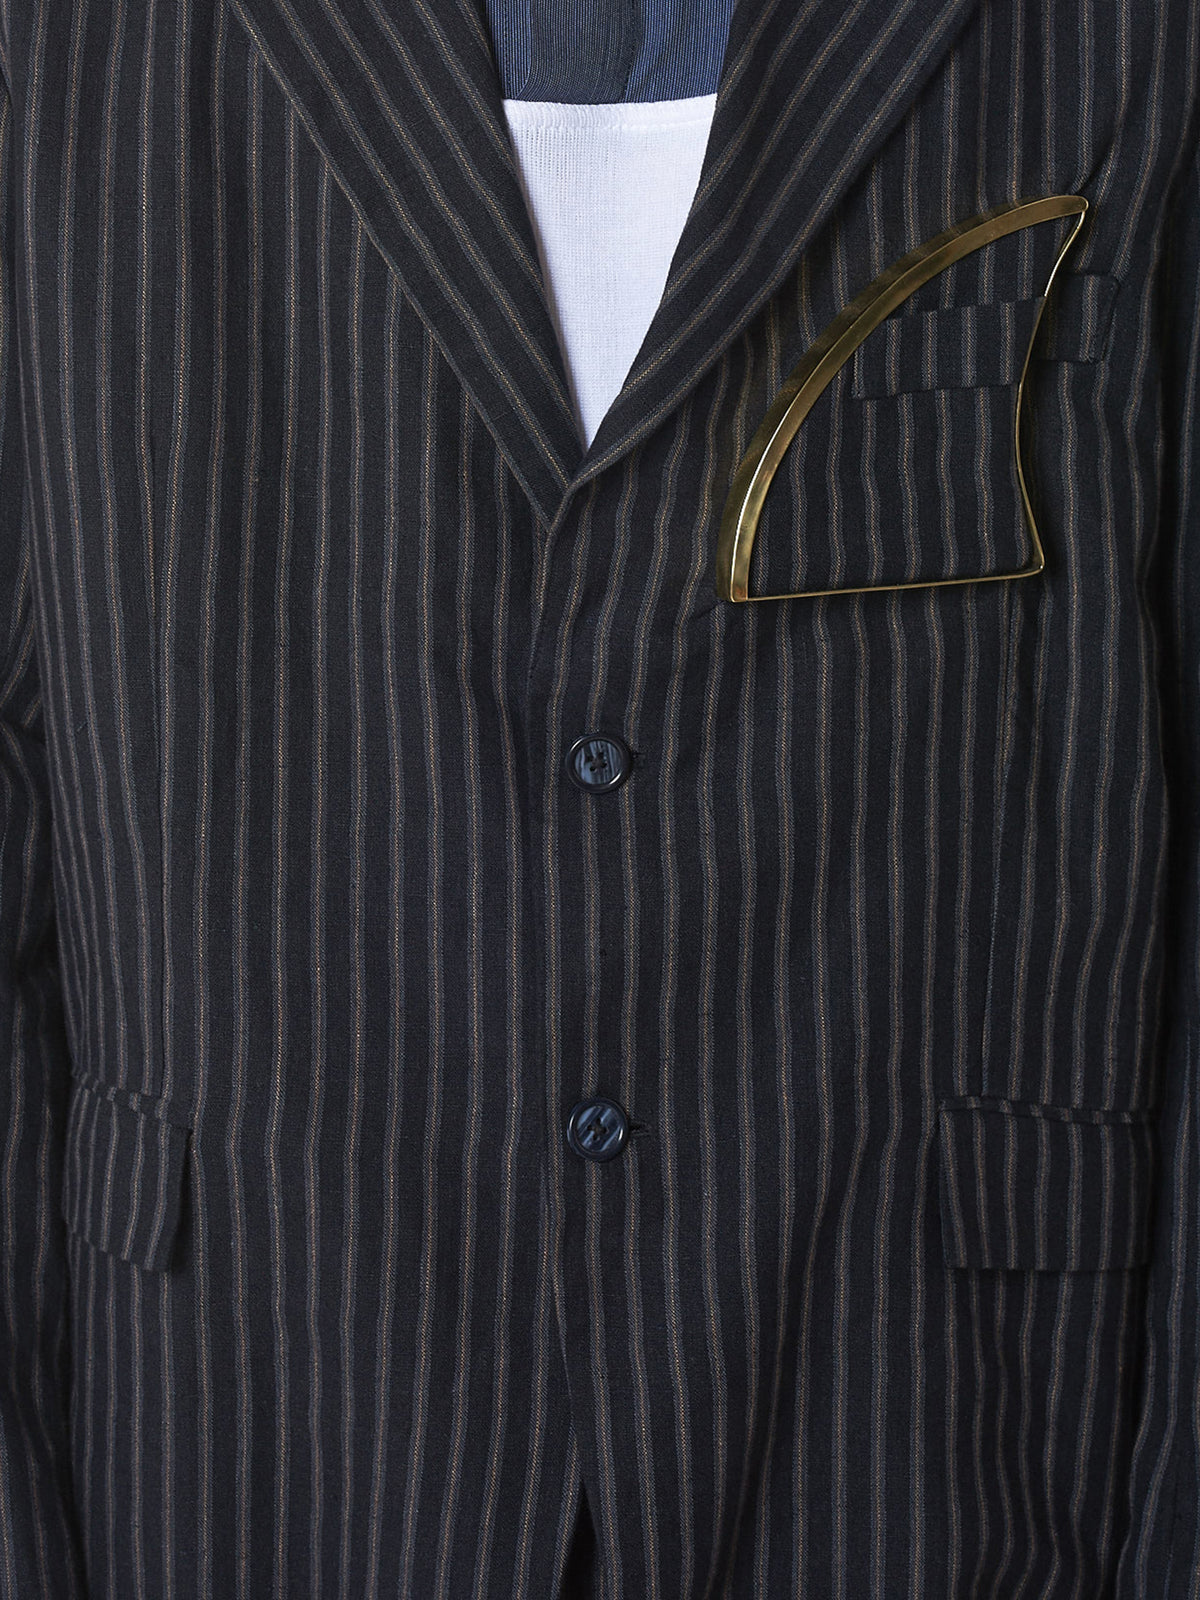 Sanchez-Kane Suit - Hlorenzo detail 2